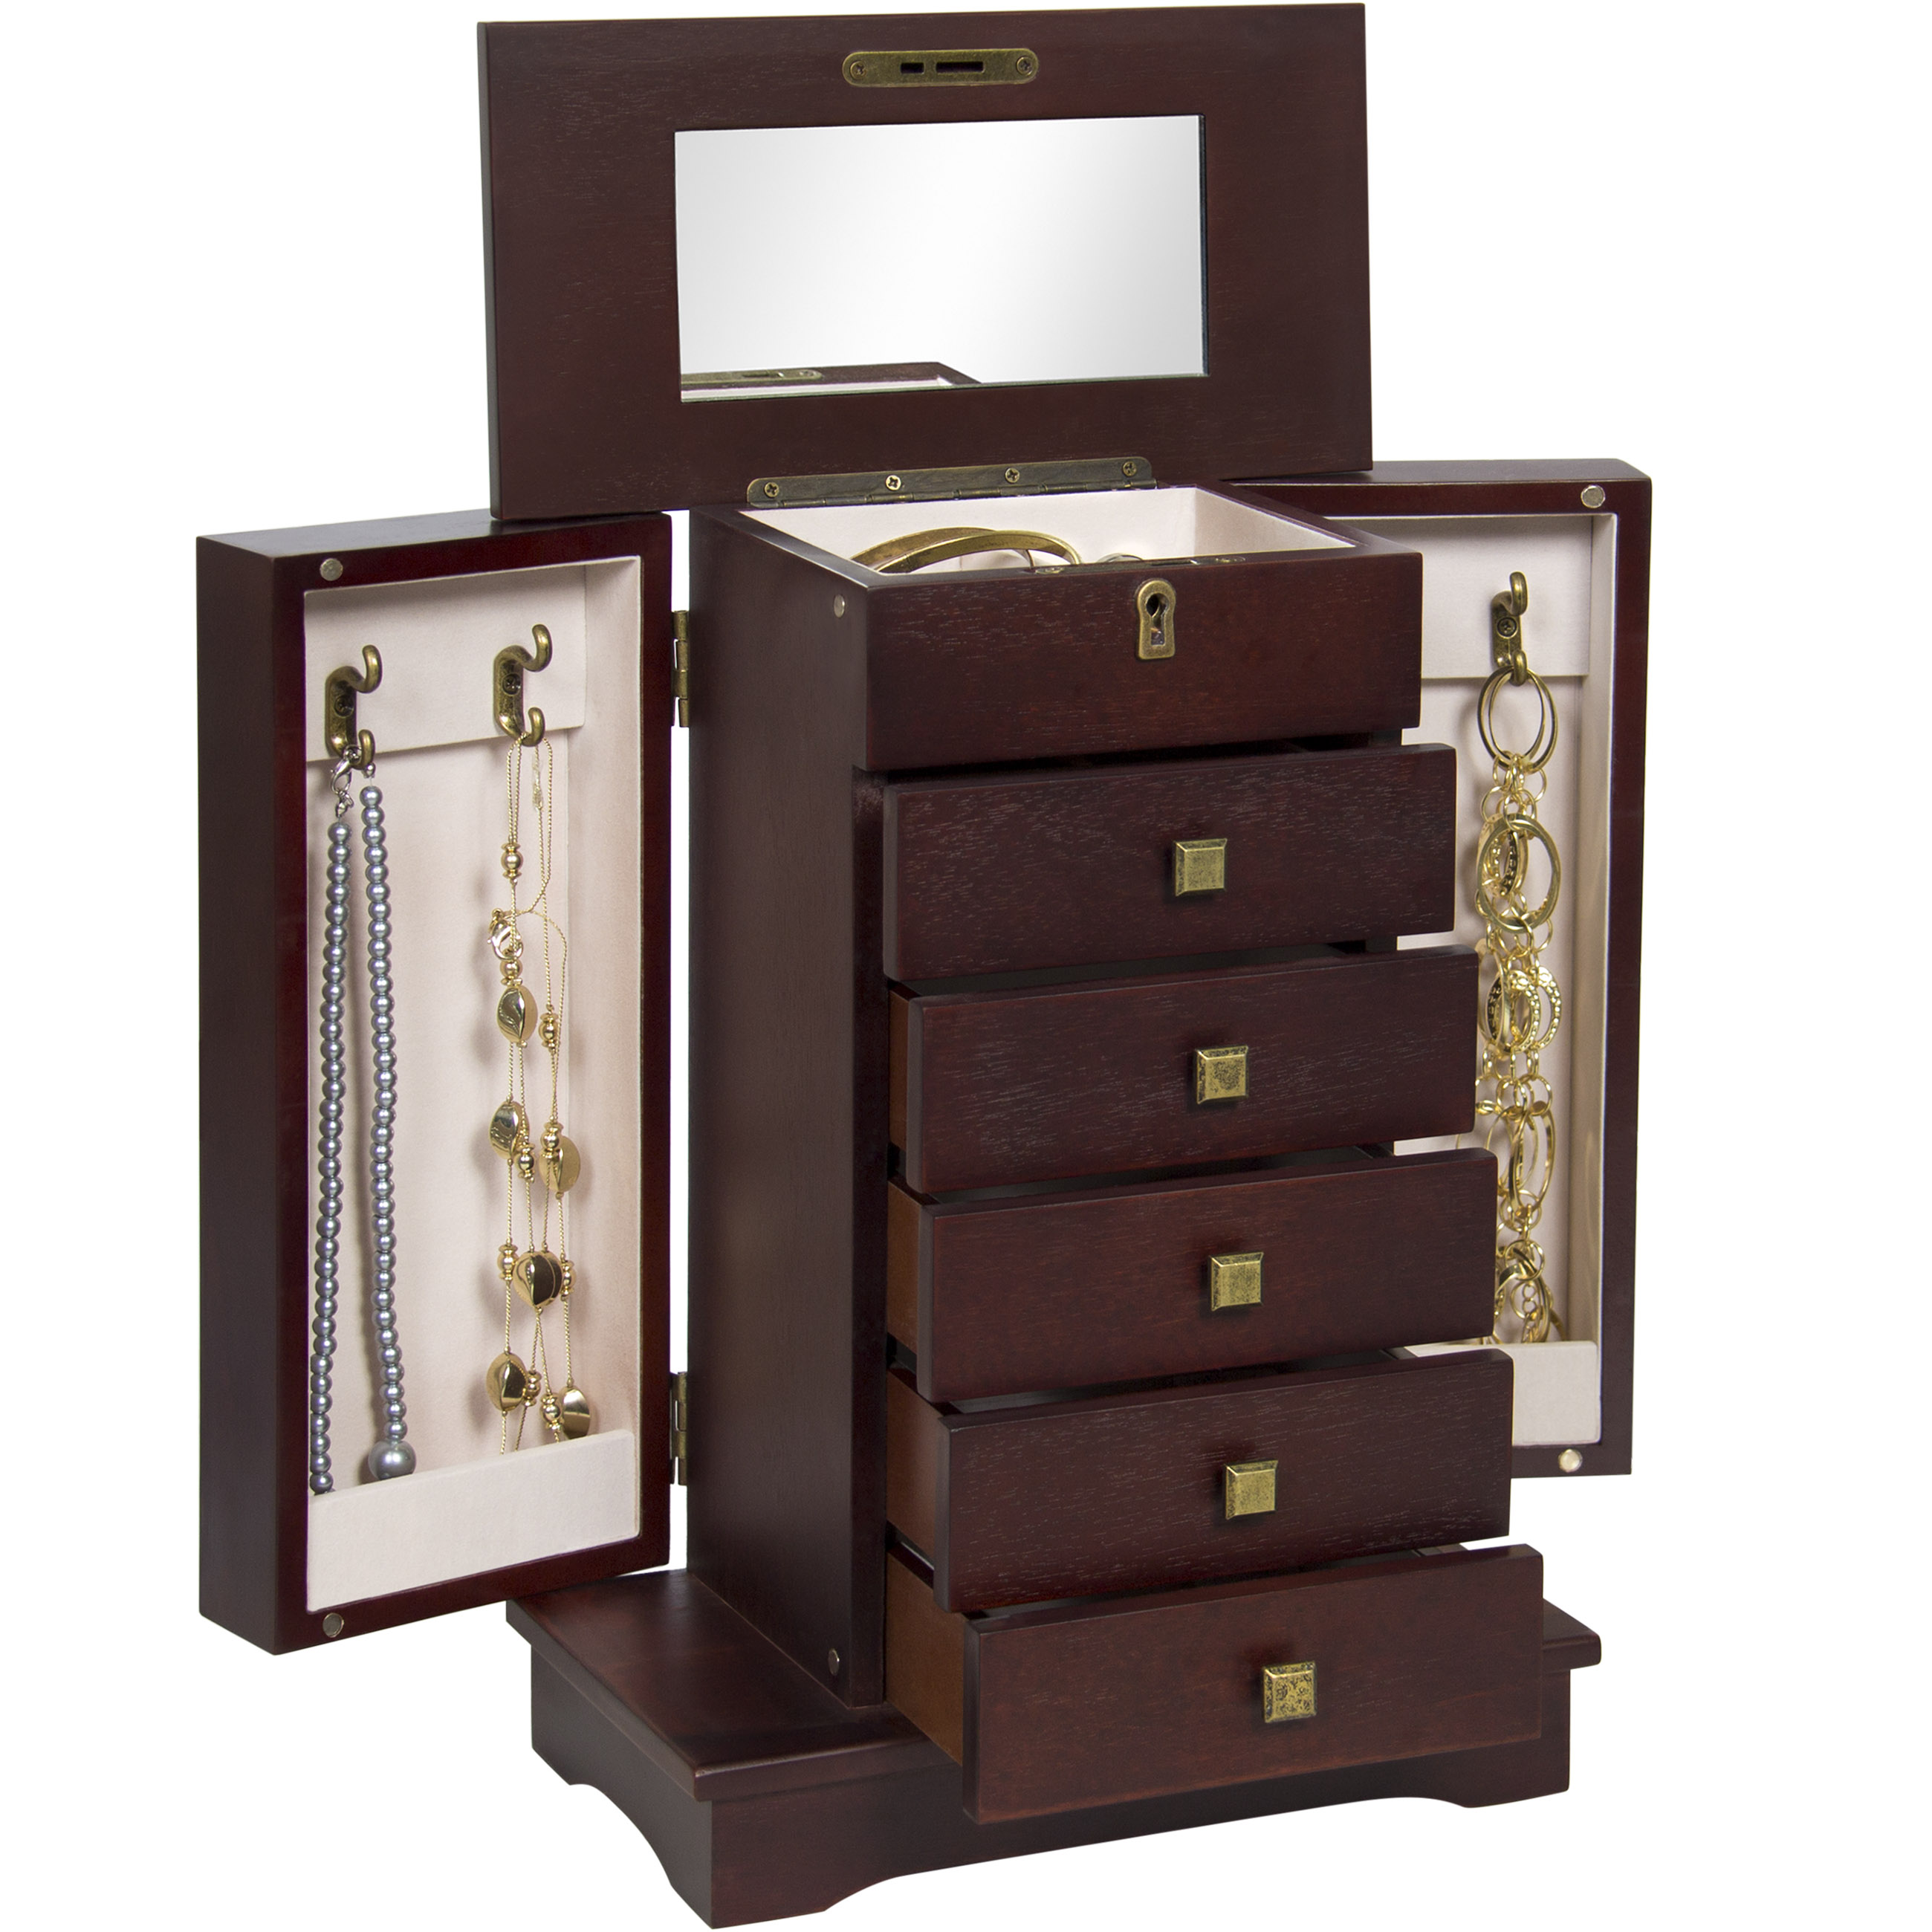 jewelry cabinet best choice products handcrafted wooden jewelry box 18018